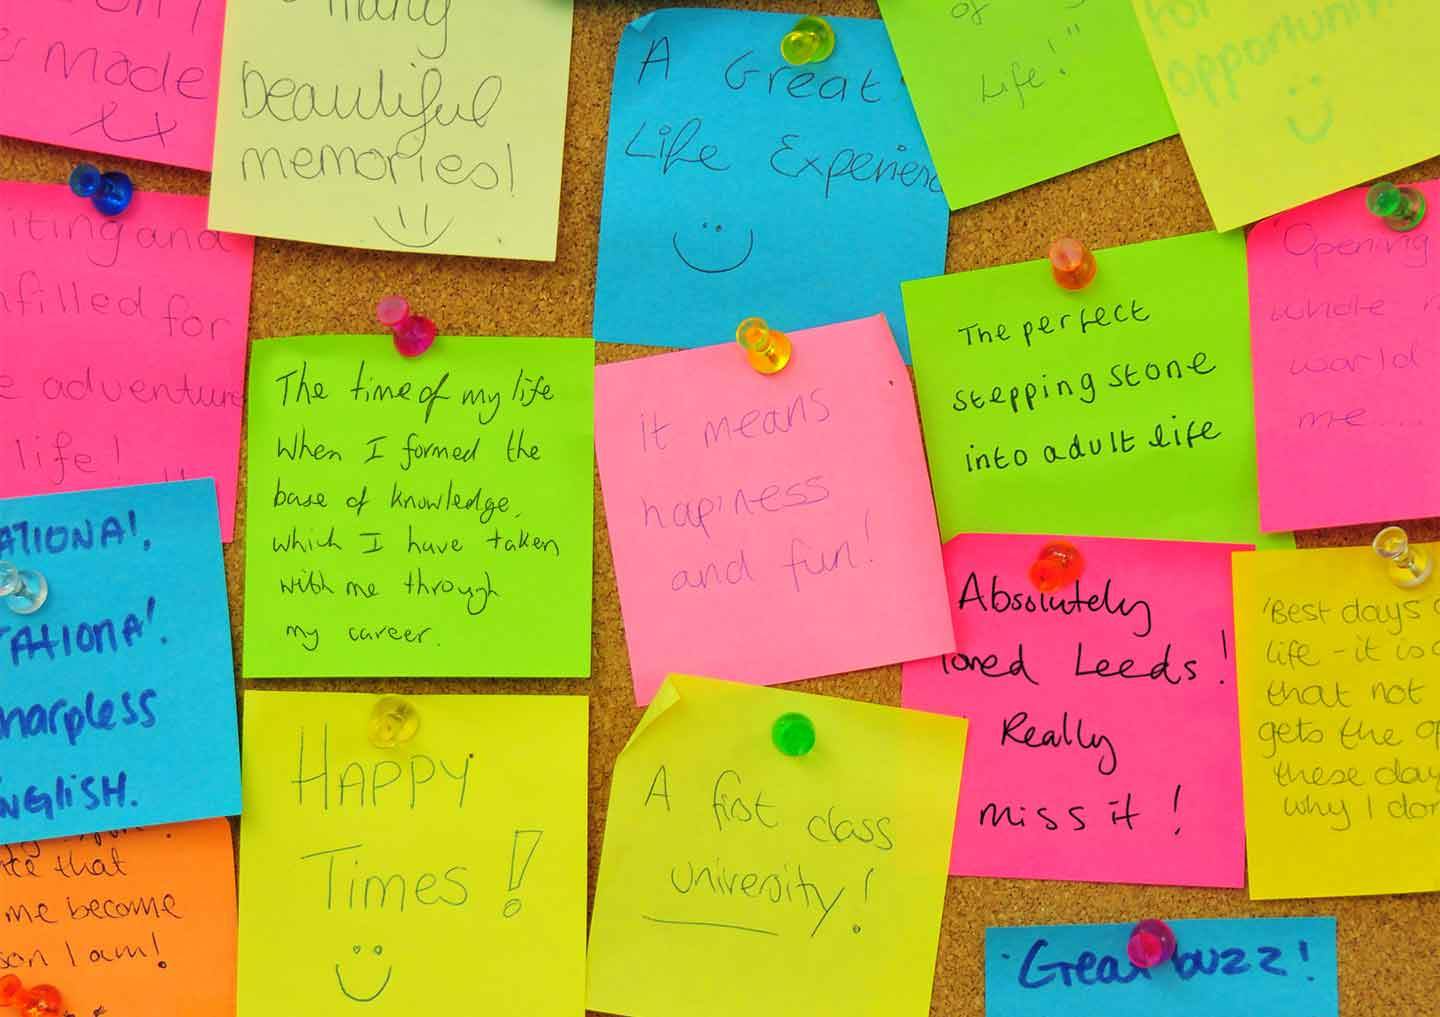 This wall of post-it notes inspired the campaign. We told prospects 'We're missing you'.